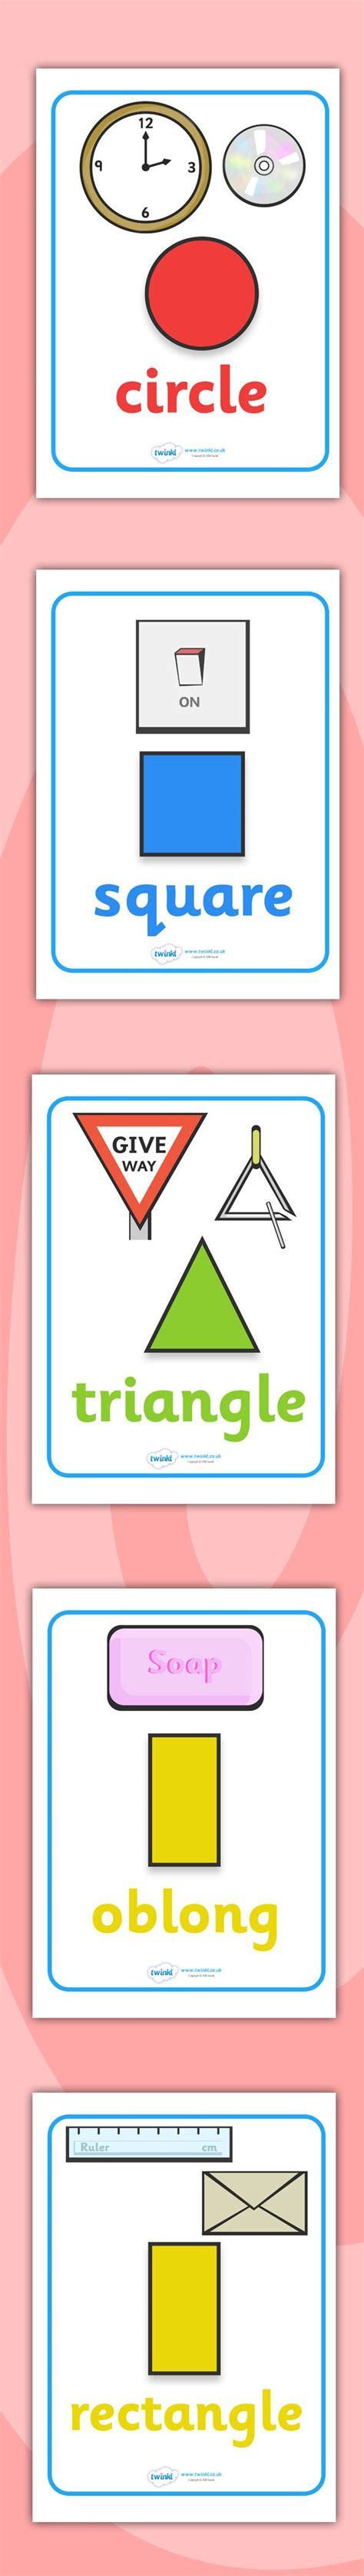 printable shapes for classroom display top 25 ideas about shape posters on pinterest printable